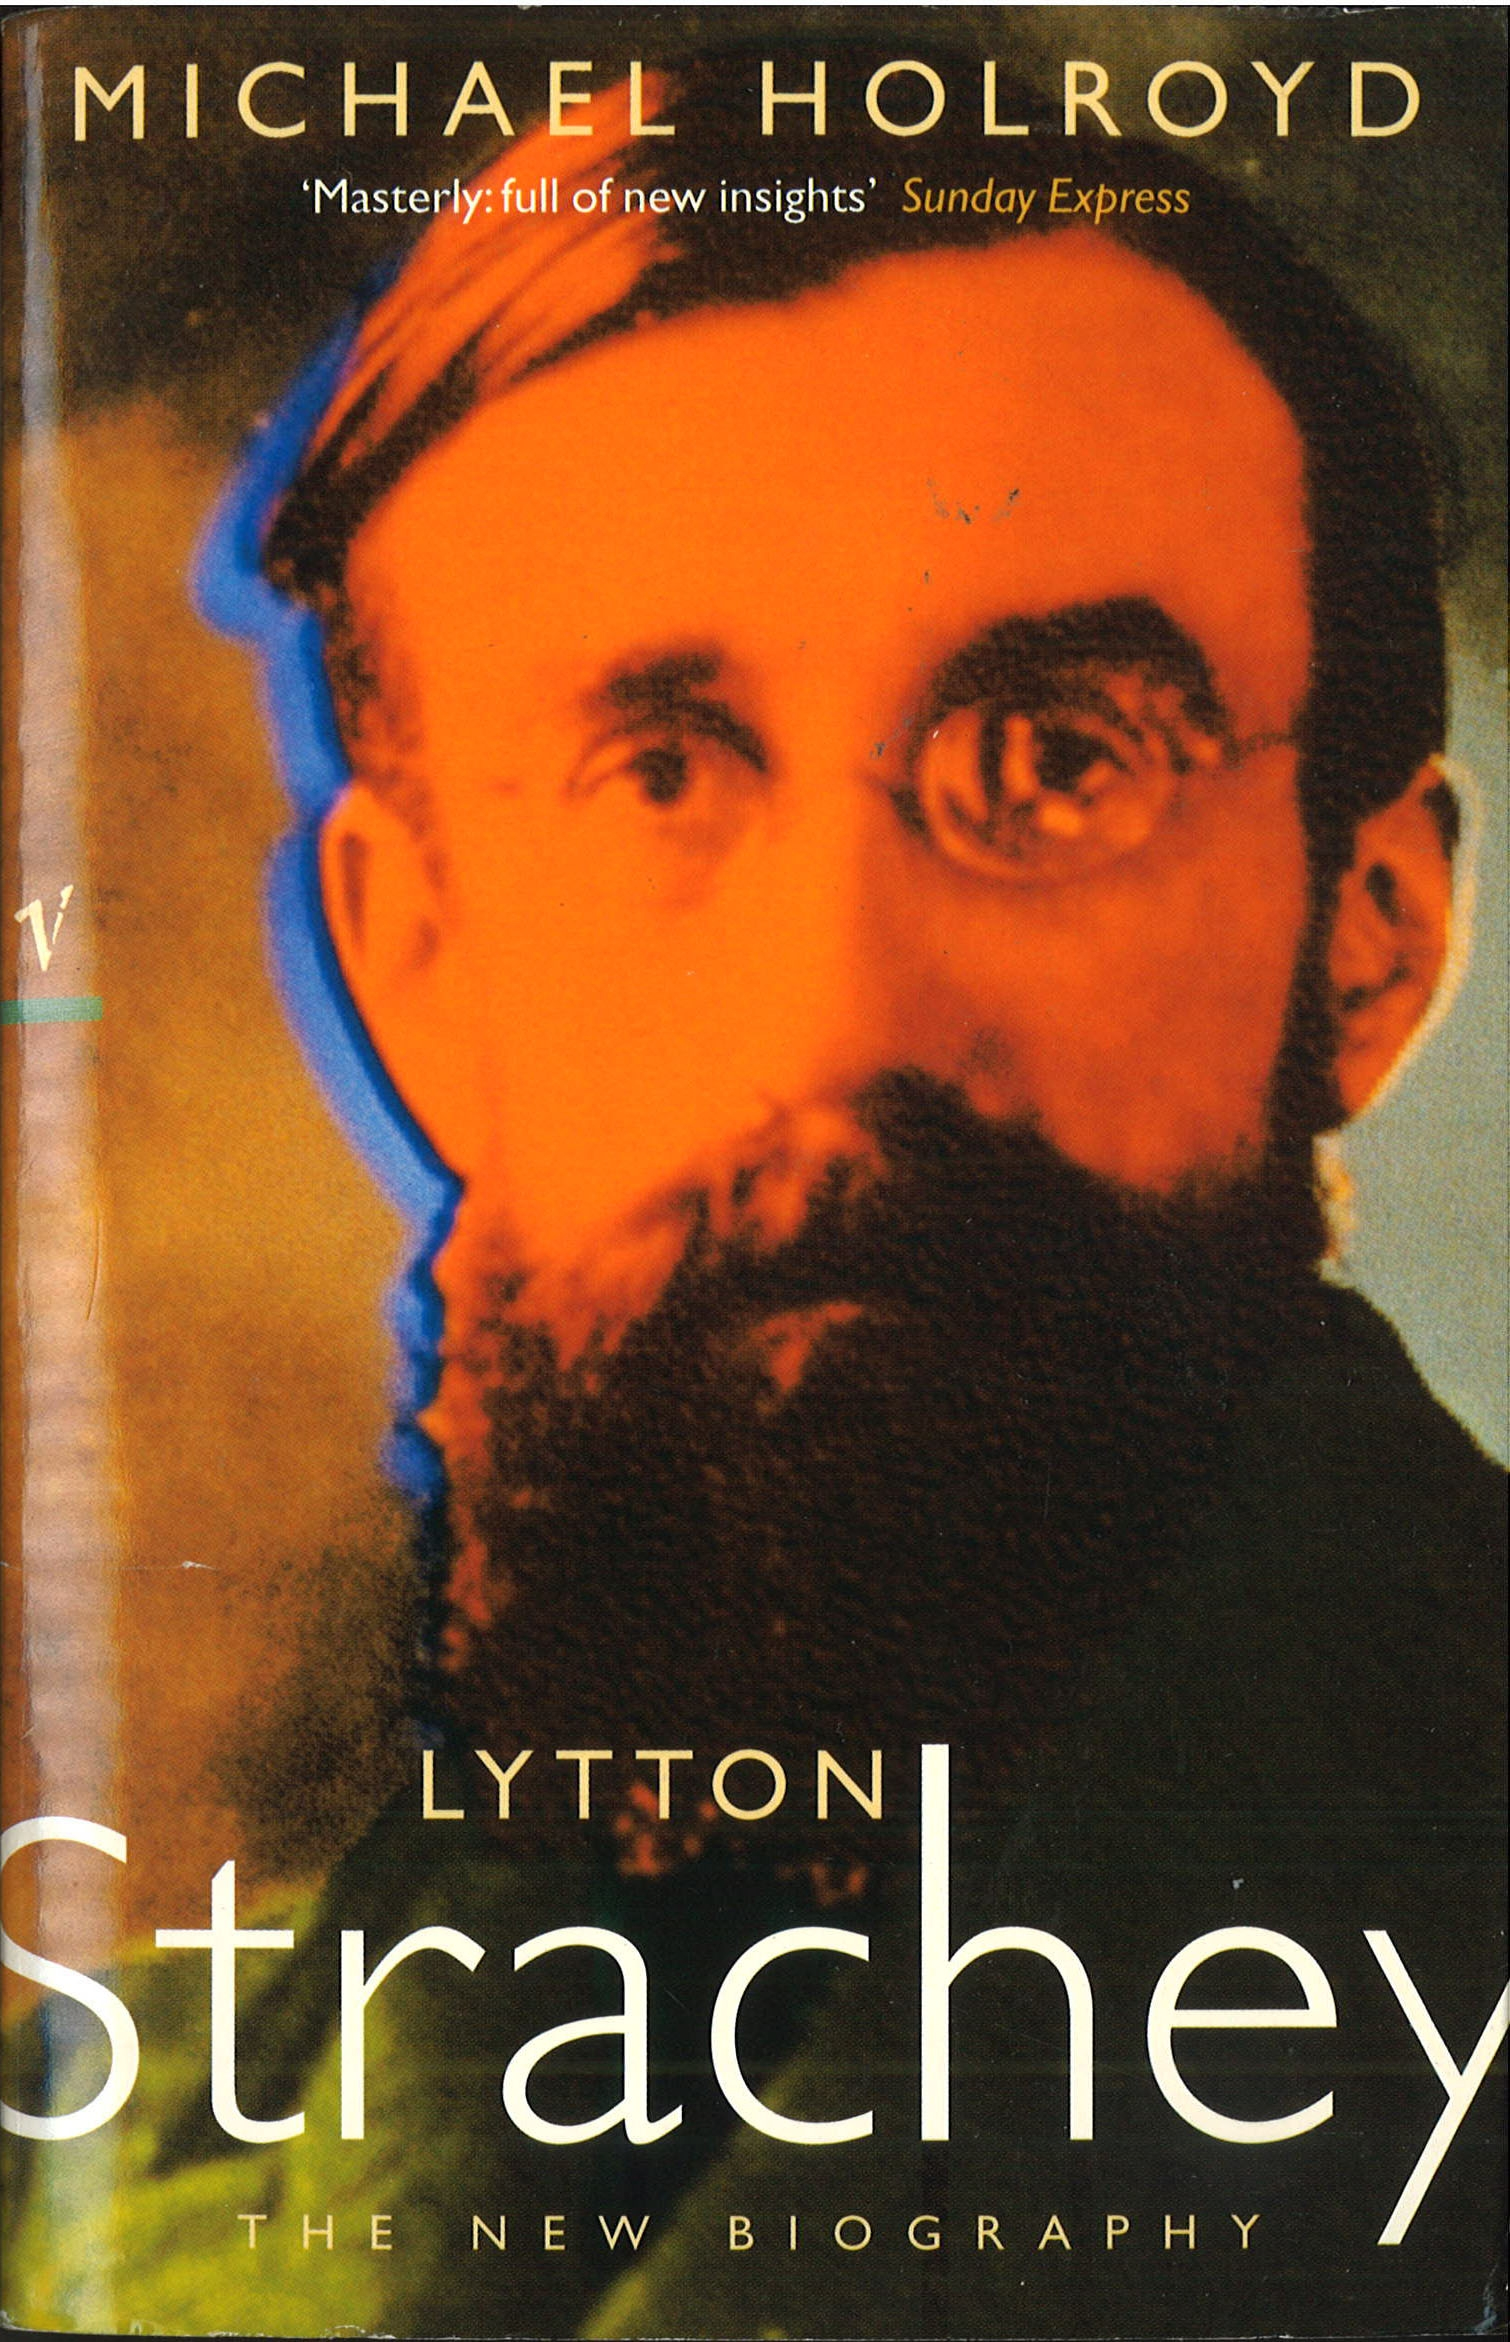 lytton strachey Lytton strachey 584 likes giles lytton strachey was a british writer and critic.